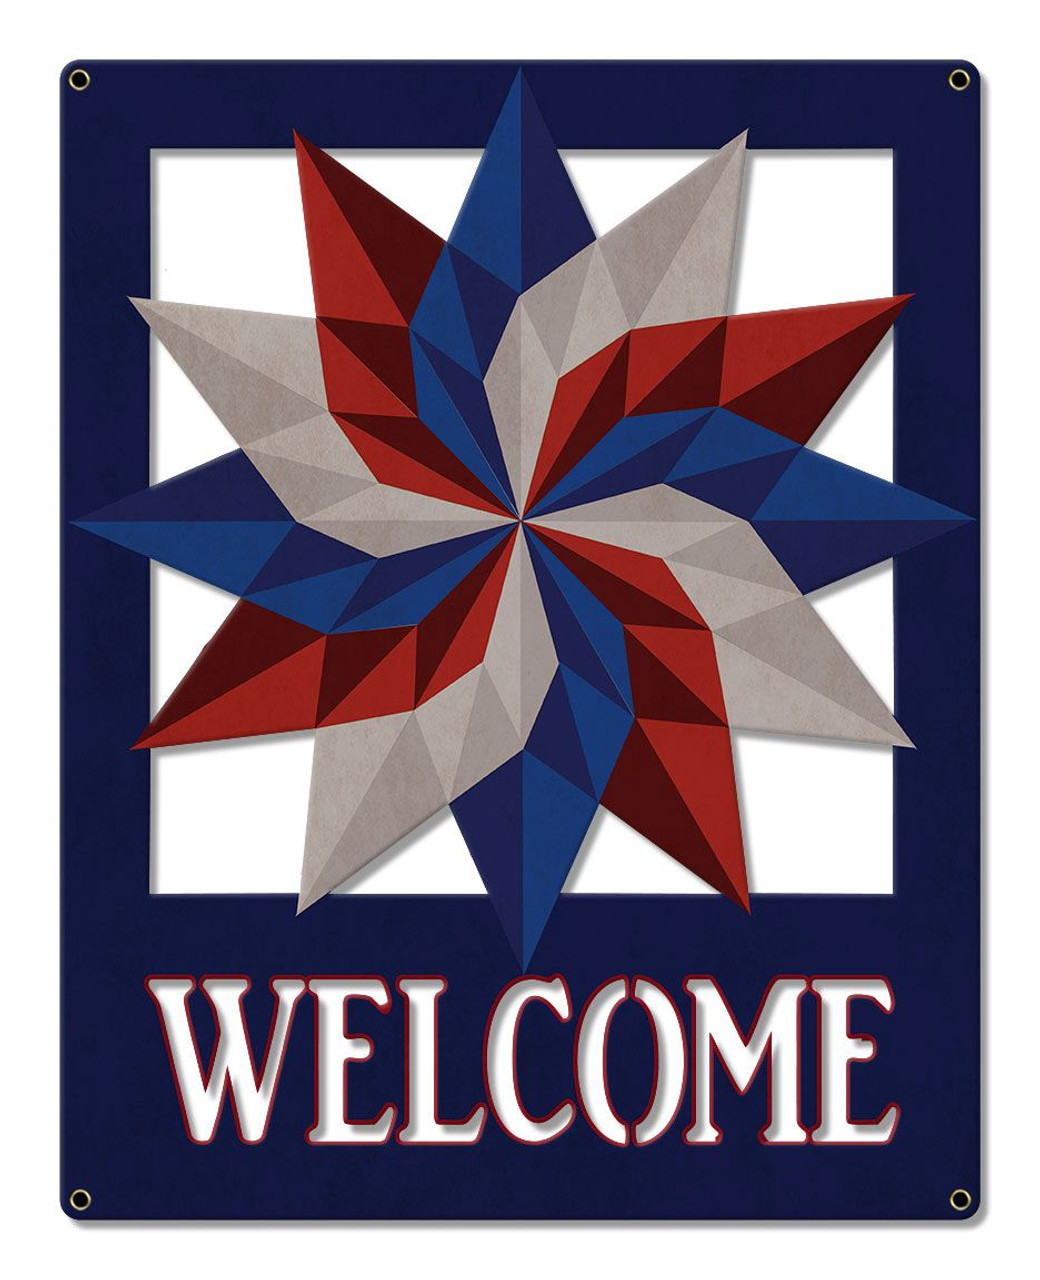 Starburst Design Welcome Metal Sign 12 x 15 Inches